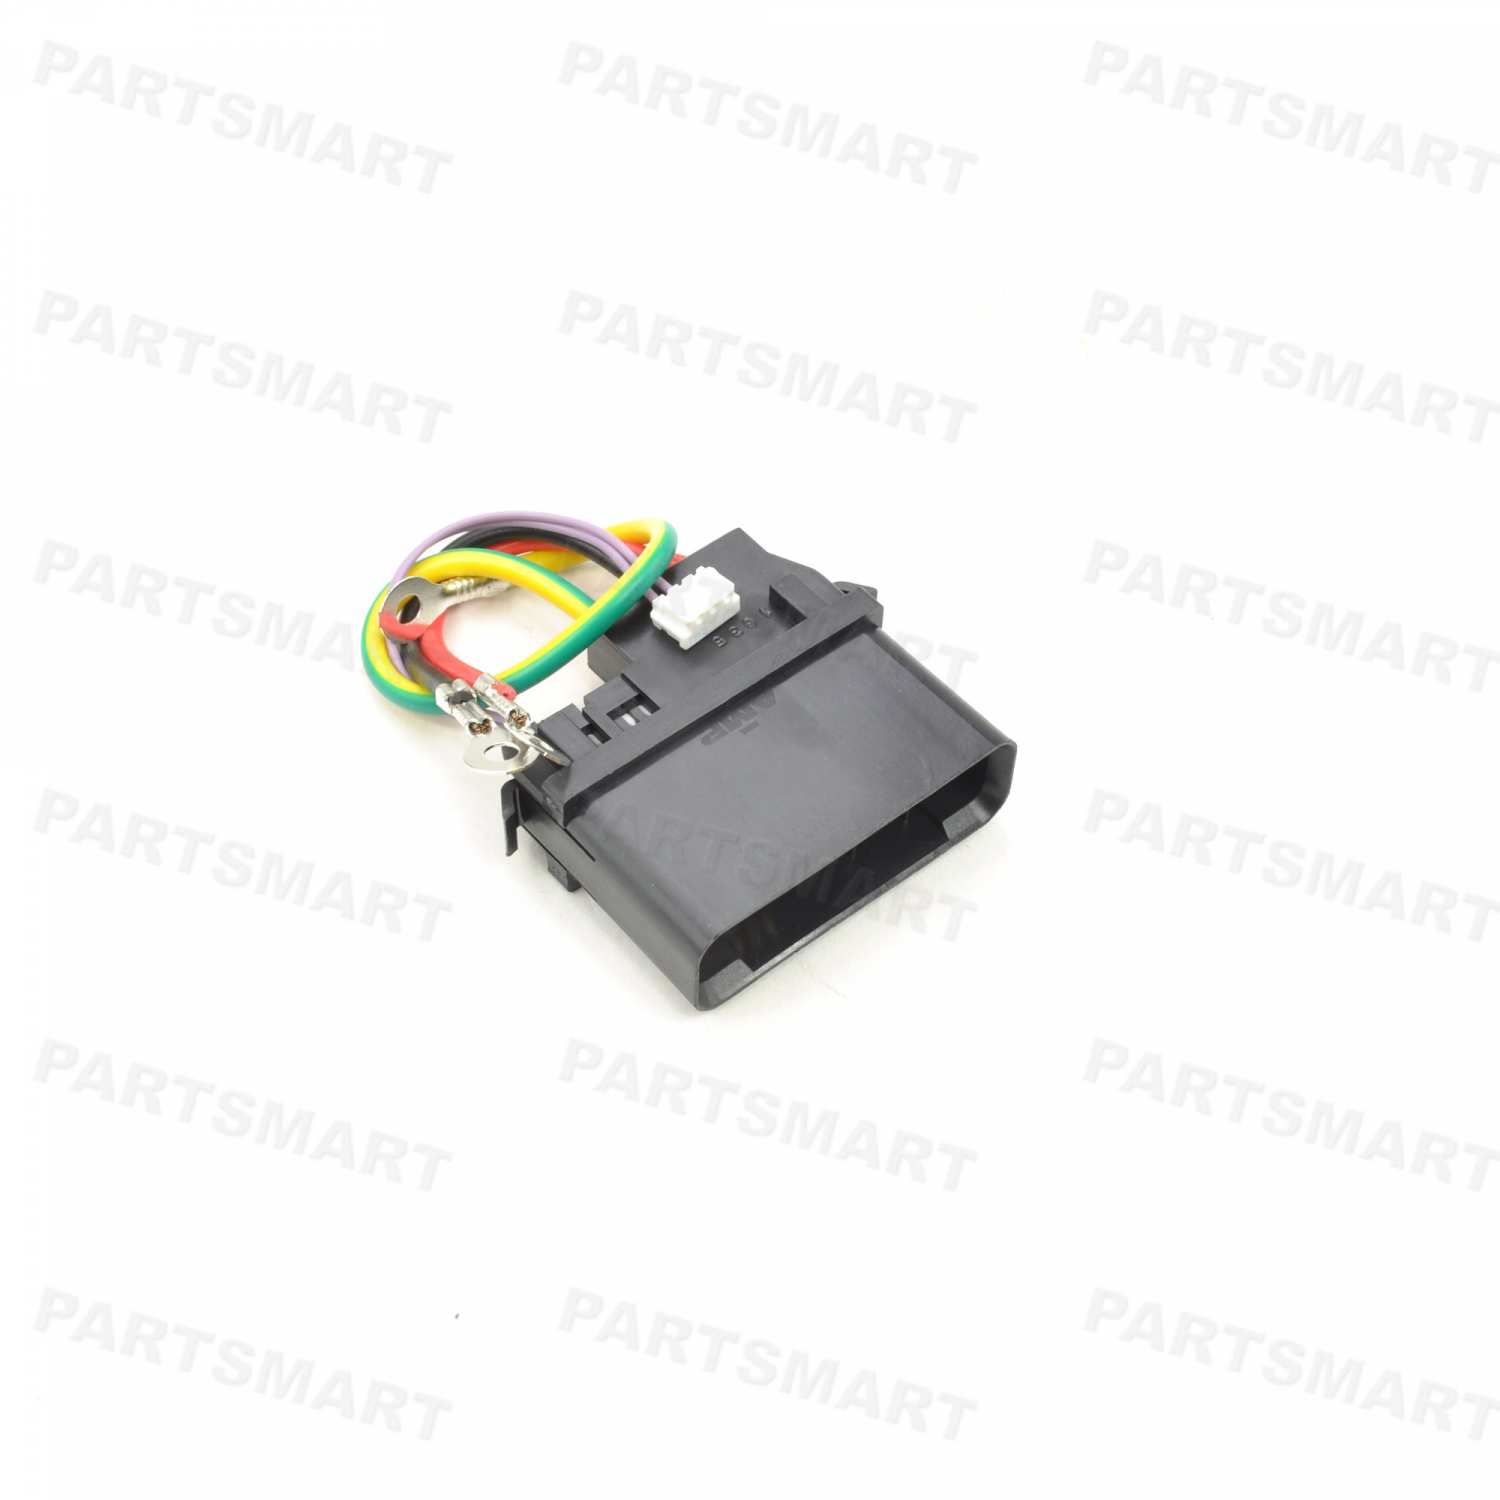 CNT-9000-S Connector, Fuser, Small for HP LaserJet 9000